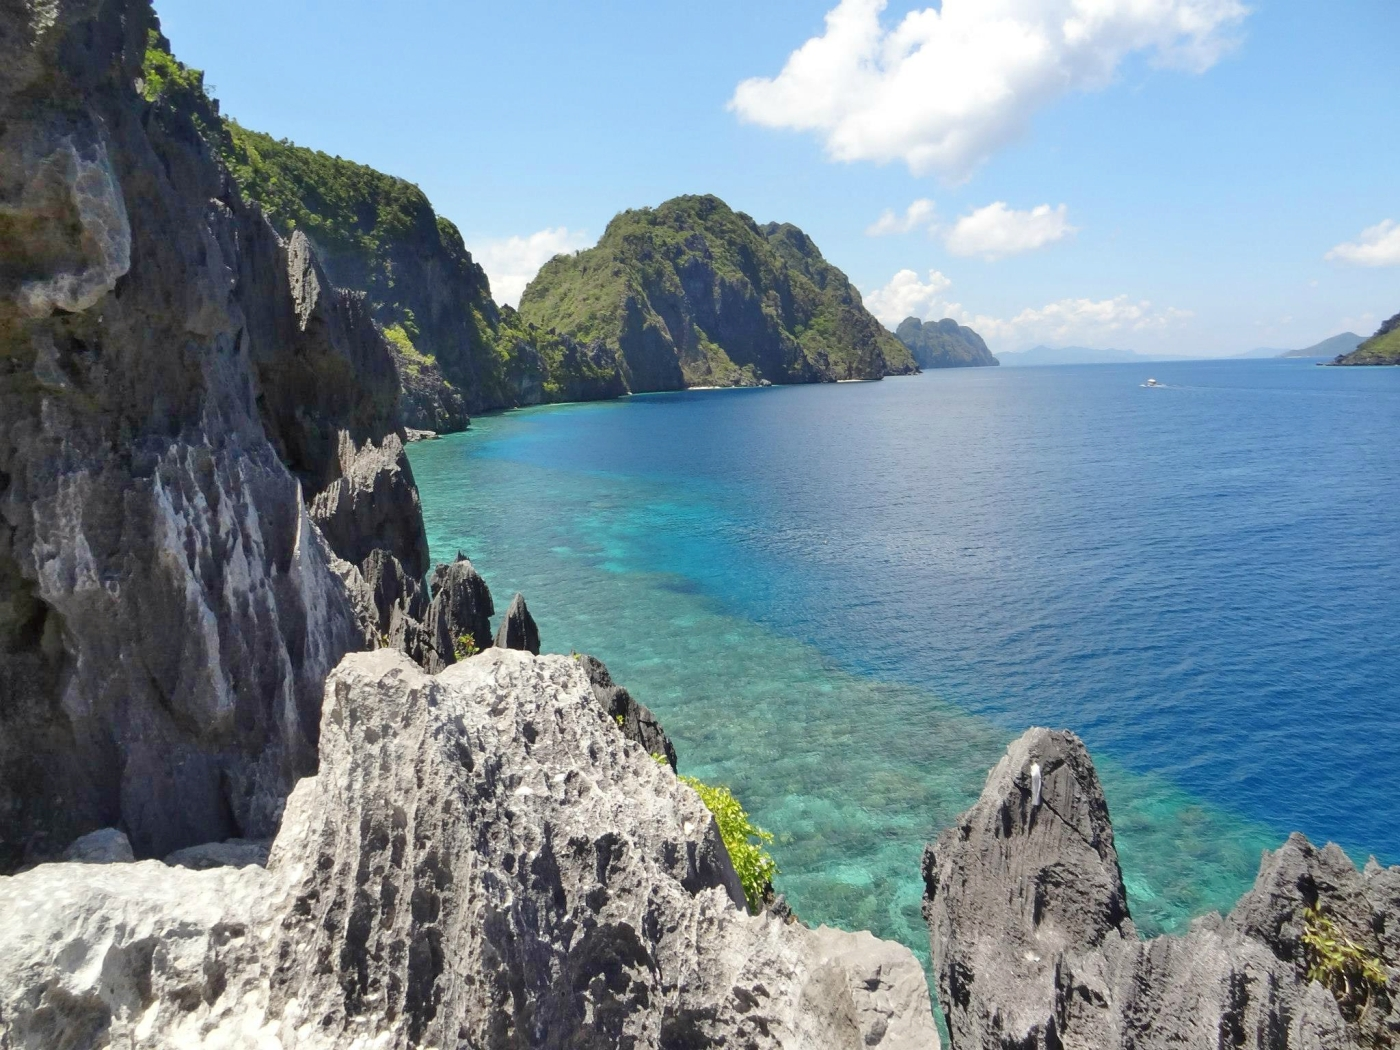 Epic reasons why I fell in love with El Nido